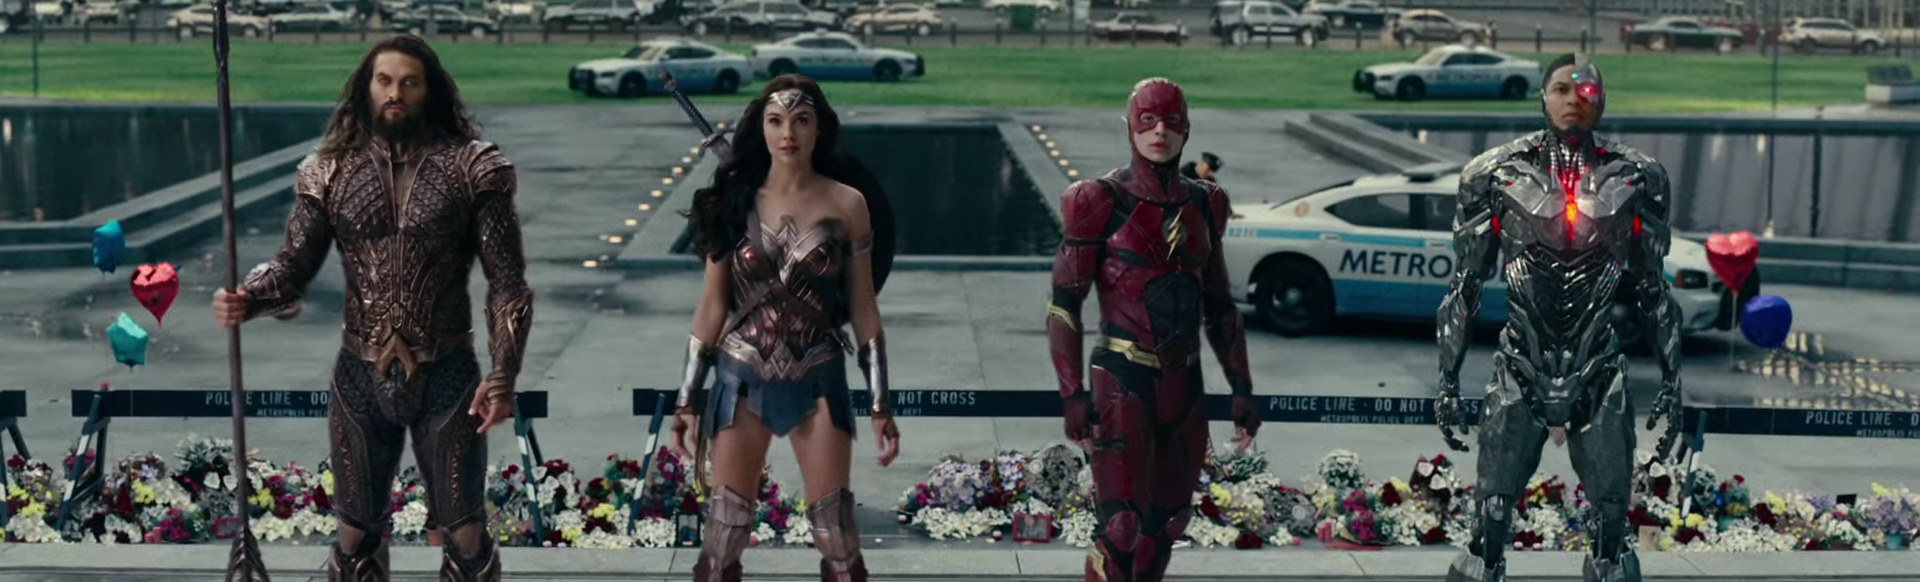 Justice League. Image Credit: Warner Bros.